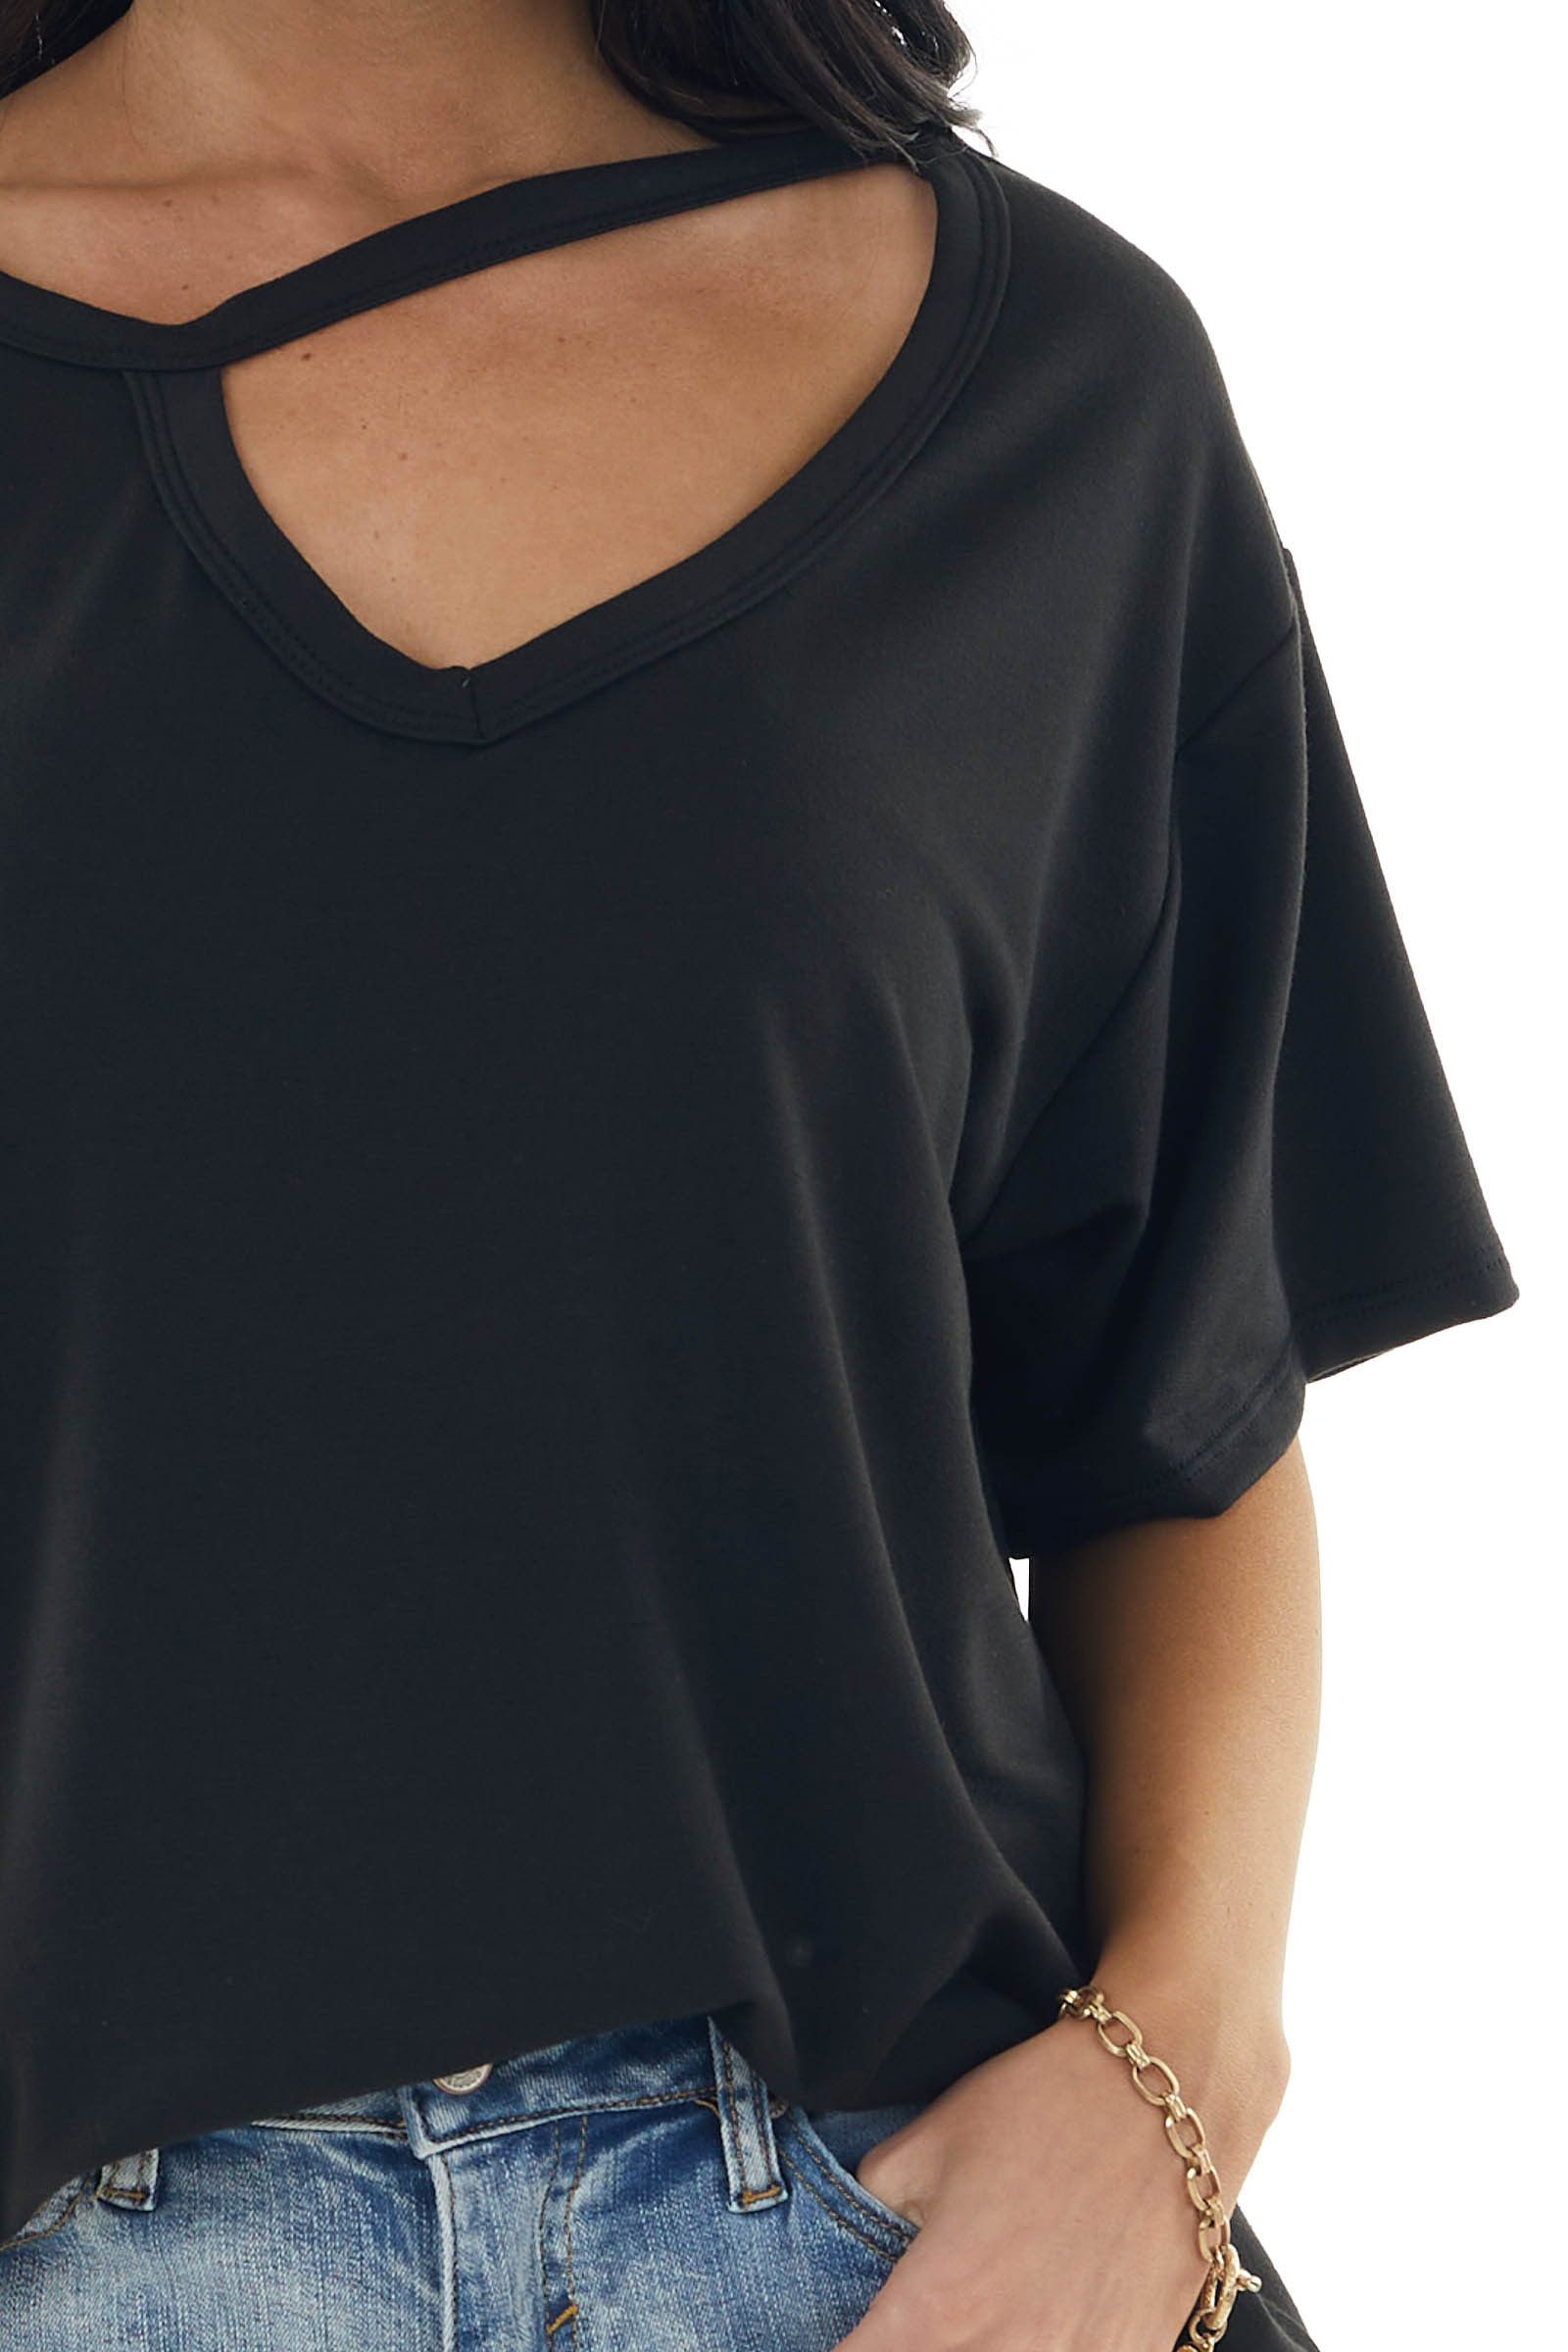 Black Half Sleeve Stretchy Knit Top with Cut Out Detail